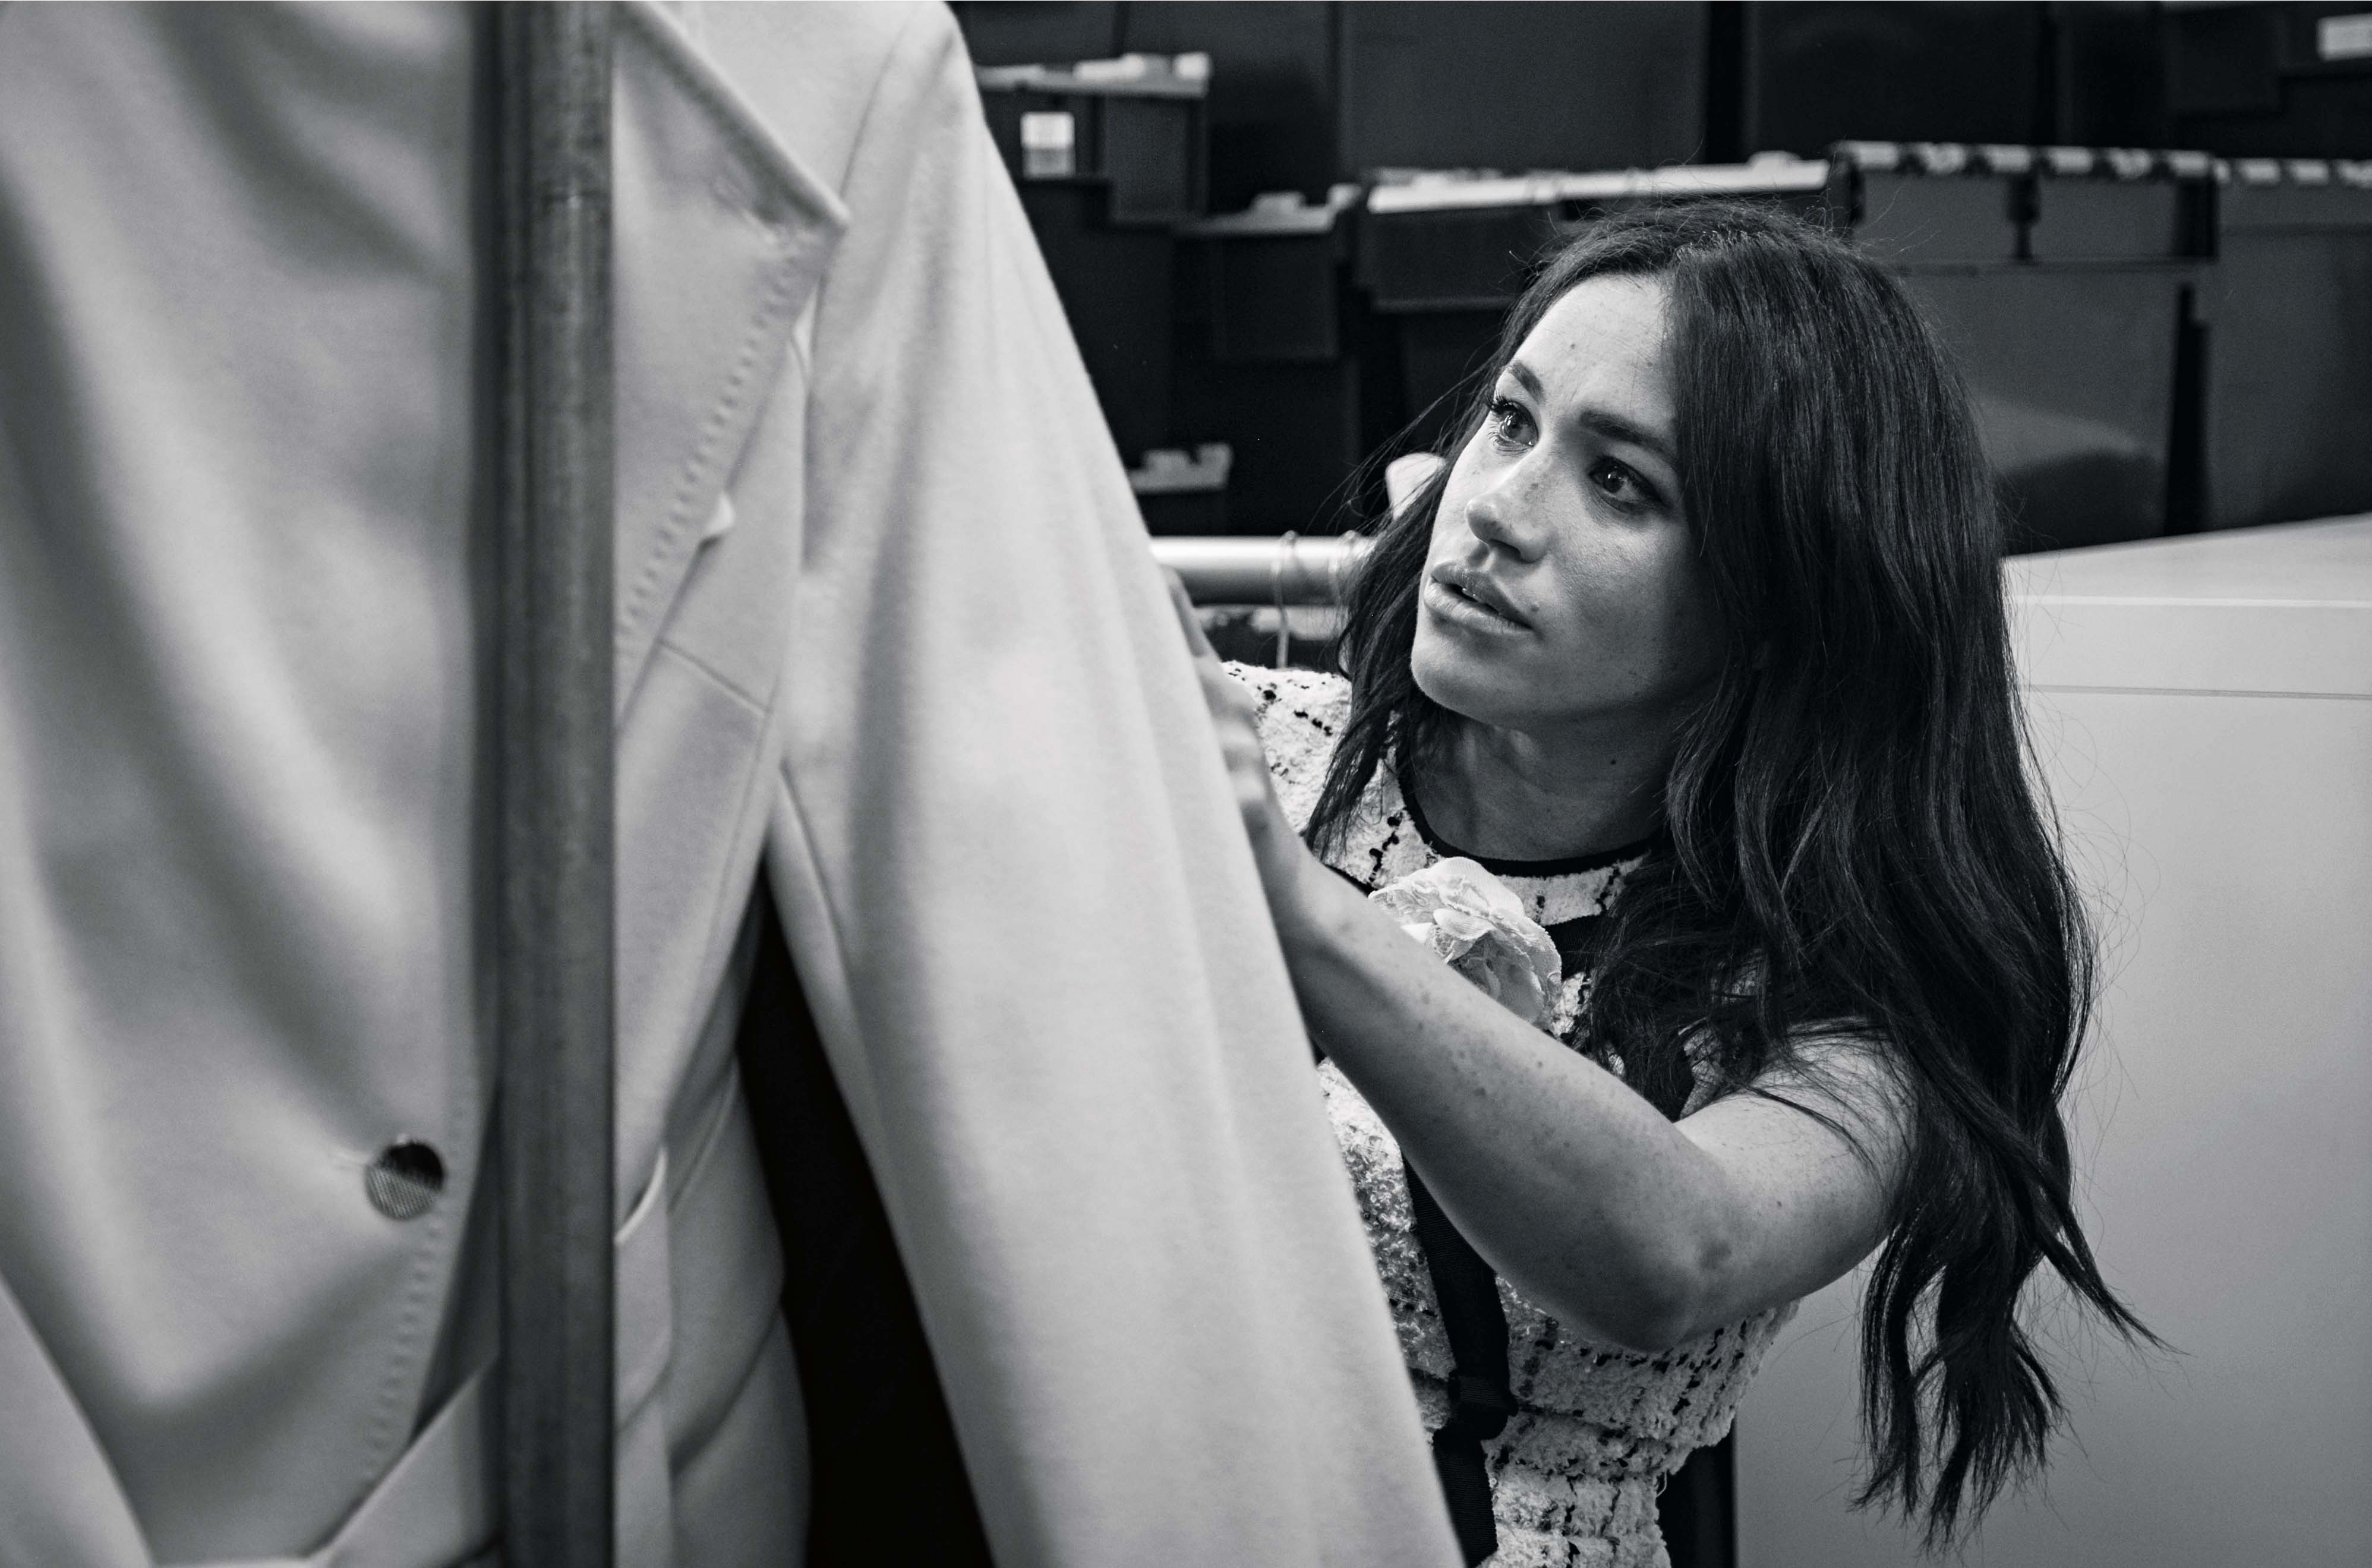 """This undated handout photo issued on July 28, 2019 by Kensington Palace shows Britain's Meghan, Duchess of Sussex, Patron of Smart Works, in the workroom of the Smart Works London office. - Prince Harry's wife Meghan will guest edit the September issue of iconic fashion magazine British Vogue, which will see her in """"candid conversation"""" with former first lady Michelle Obama. (Photo by @SussexRoyal / various sources / AFP) / XGTY / RESTRICTED TO EDITORIAL USE - MANDATORY CREDIT """"AFP PHOTO / @SUSSEXROYAL"""" - NO MARKETING NO ADVERTISING CAMPAIGNS - NO COMMERCIAL USE - NO THIRD PARTY SALES - RESTRICTED TO SUBSCRIPTION USE - NO CROPPING OR MODIFICATION - DISTRIBUTED AS A SERVICE TO CLIENTS /         (Photo credit should read @SUSSEXROYAL/AFP via Getty Images)"""